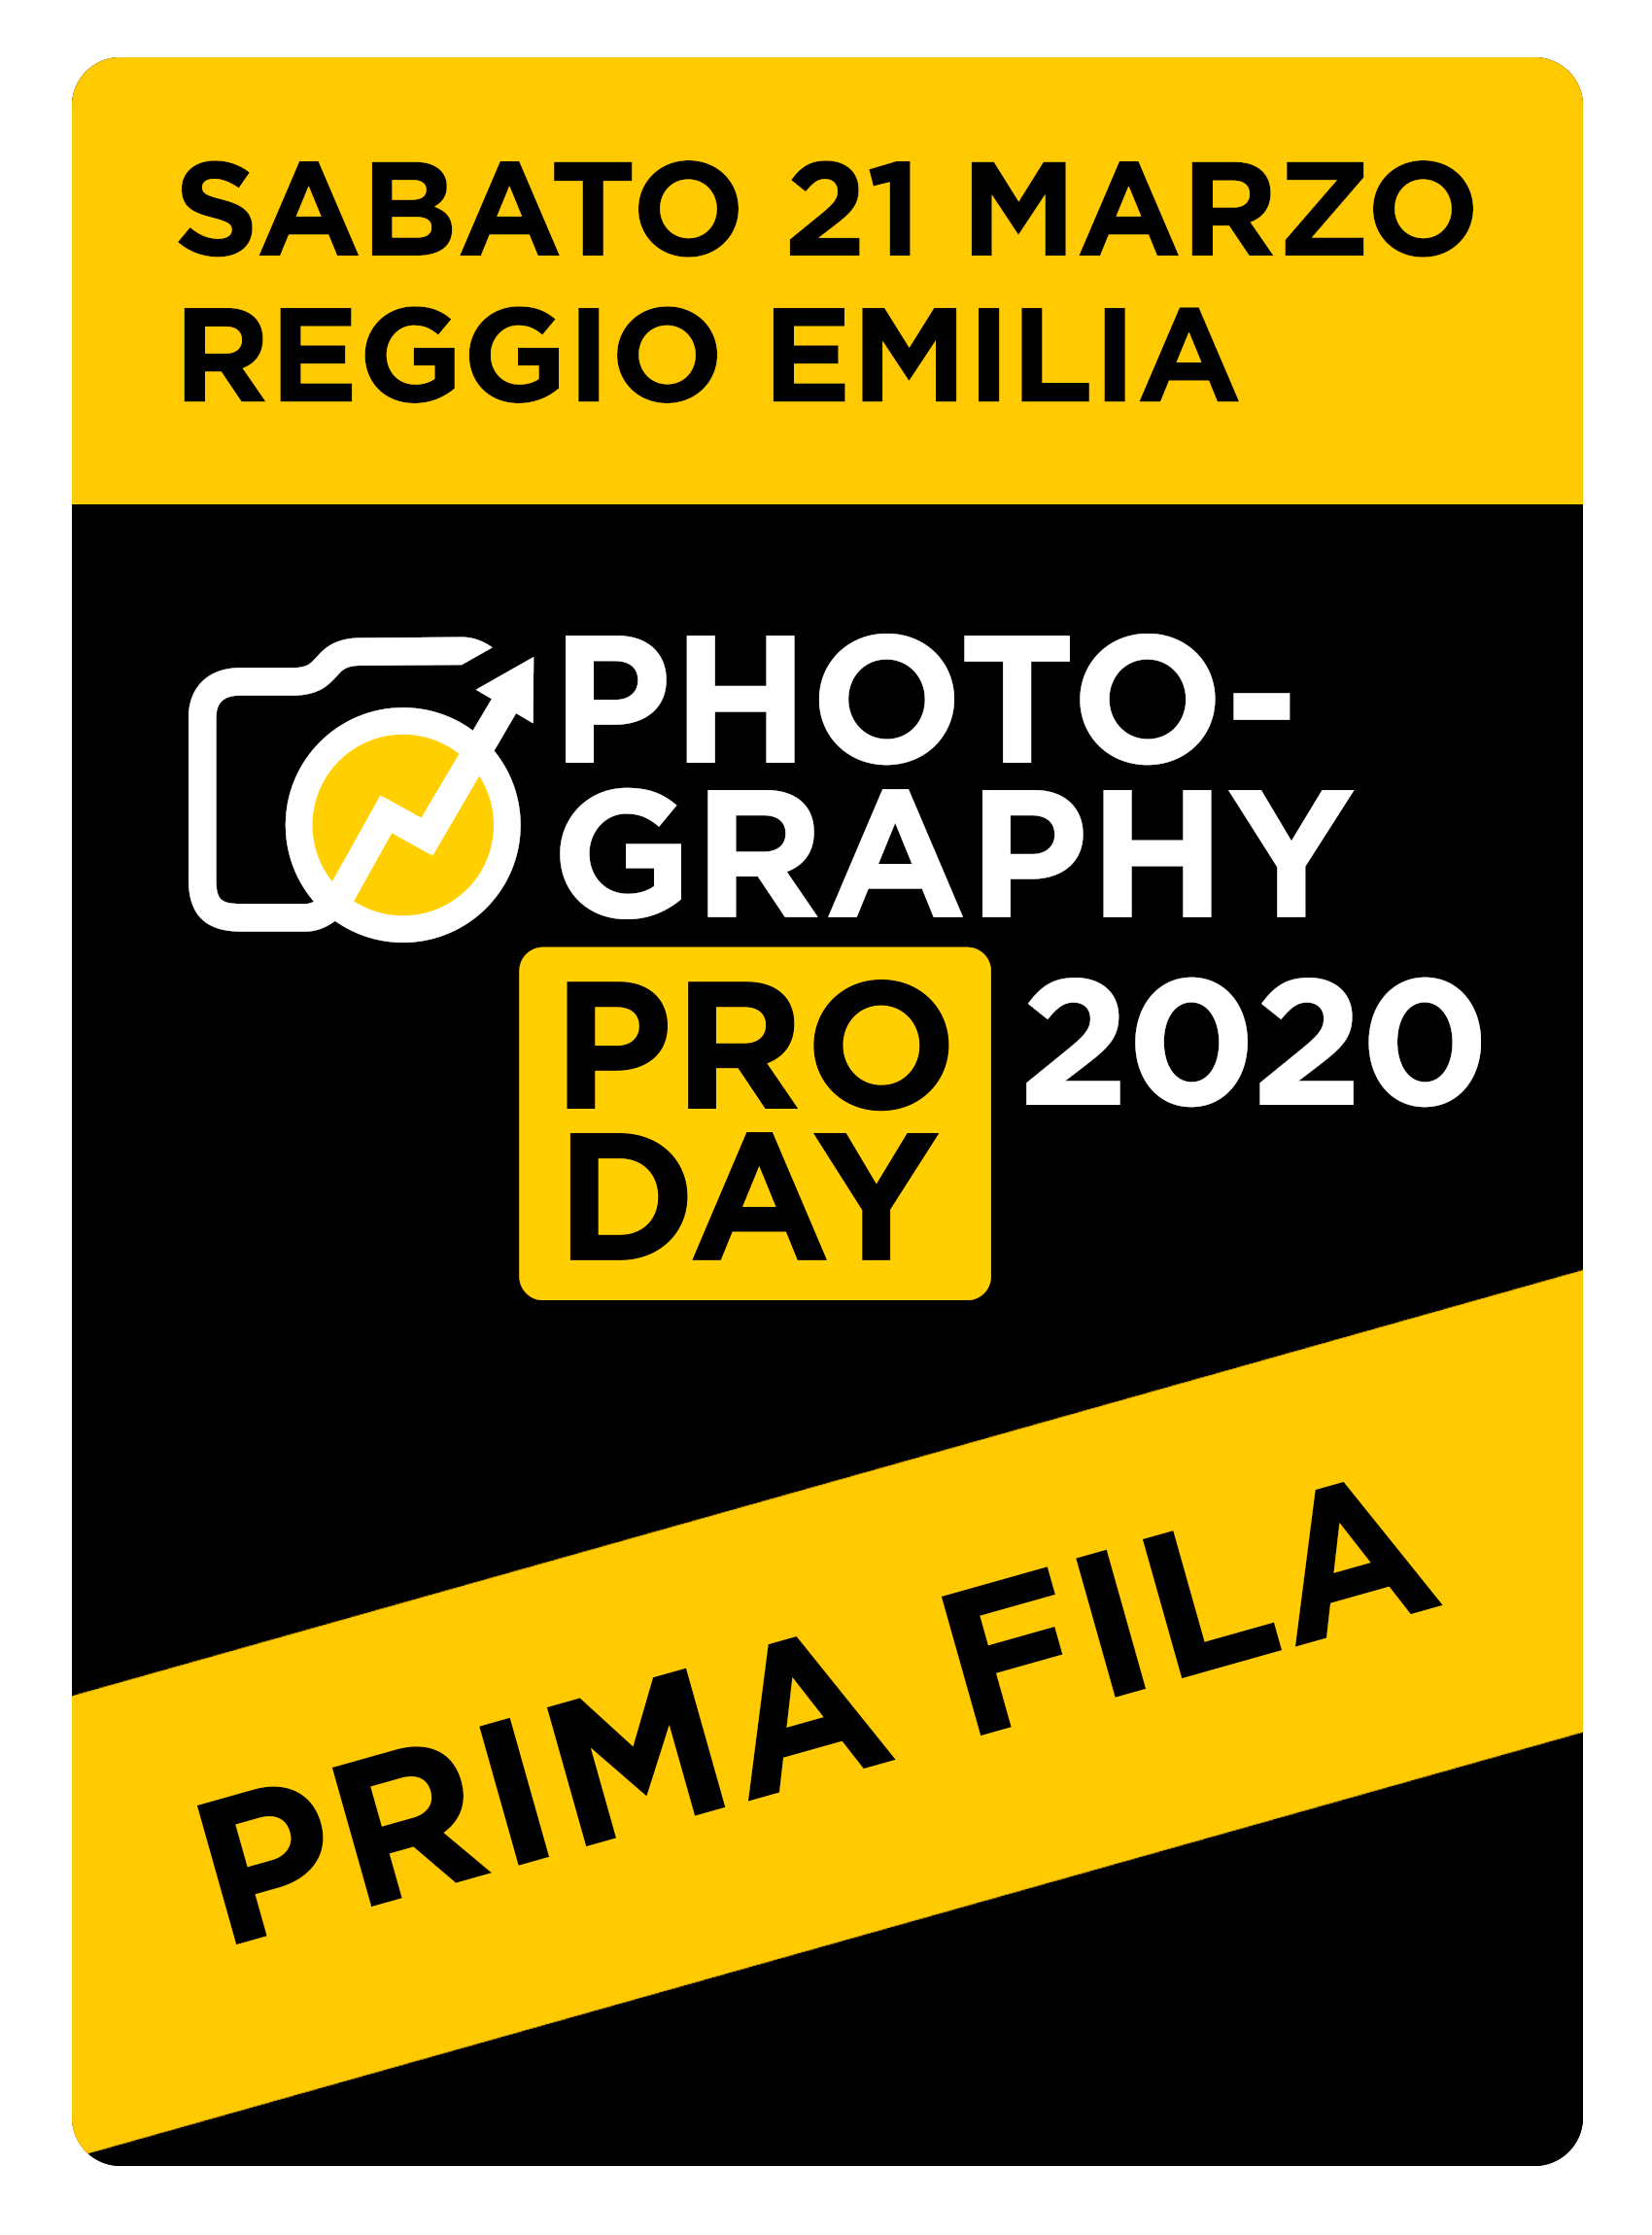 Photography PRO Day 2020 - Prima Fila